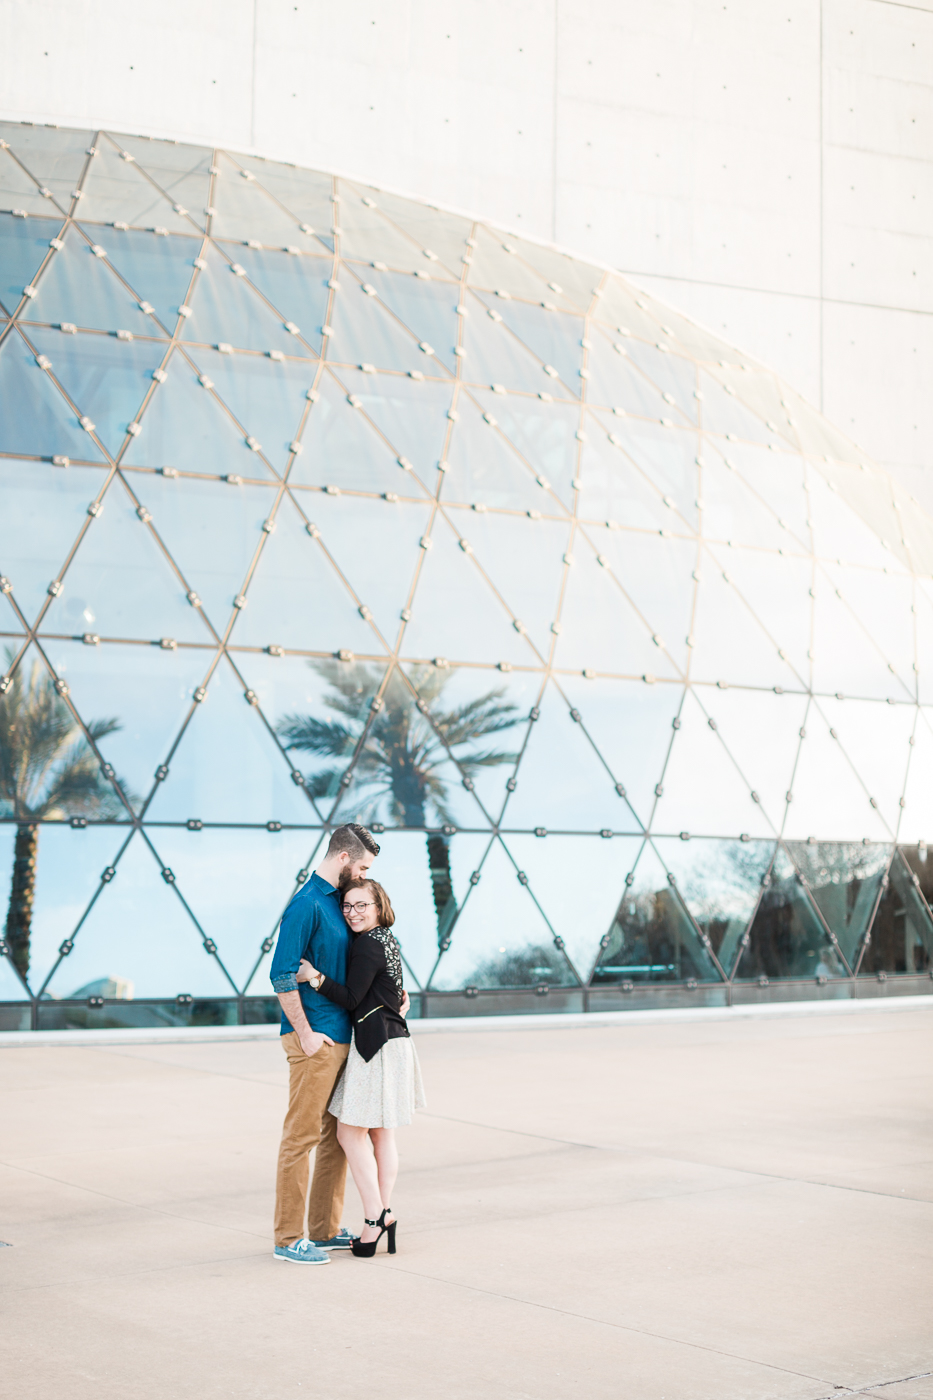 Ashley + Mike - St. petersburg, florida